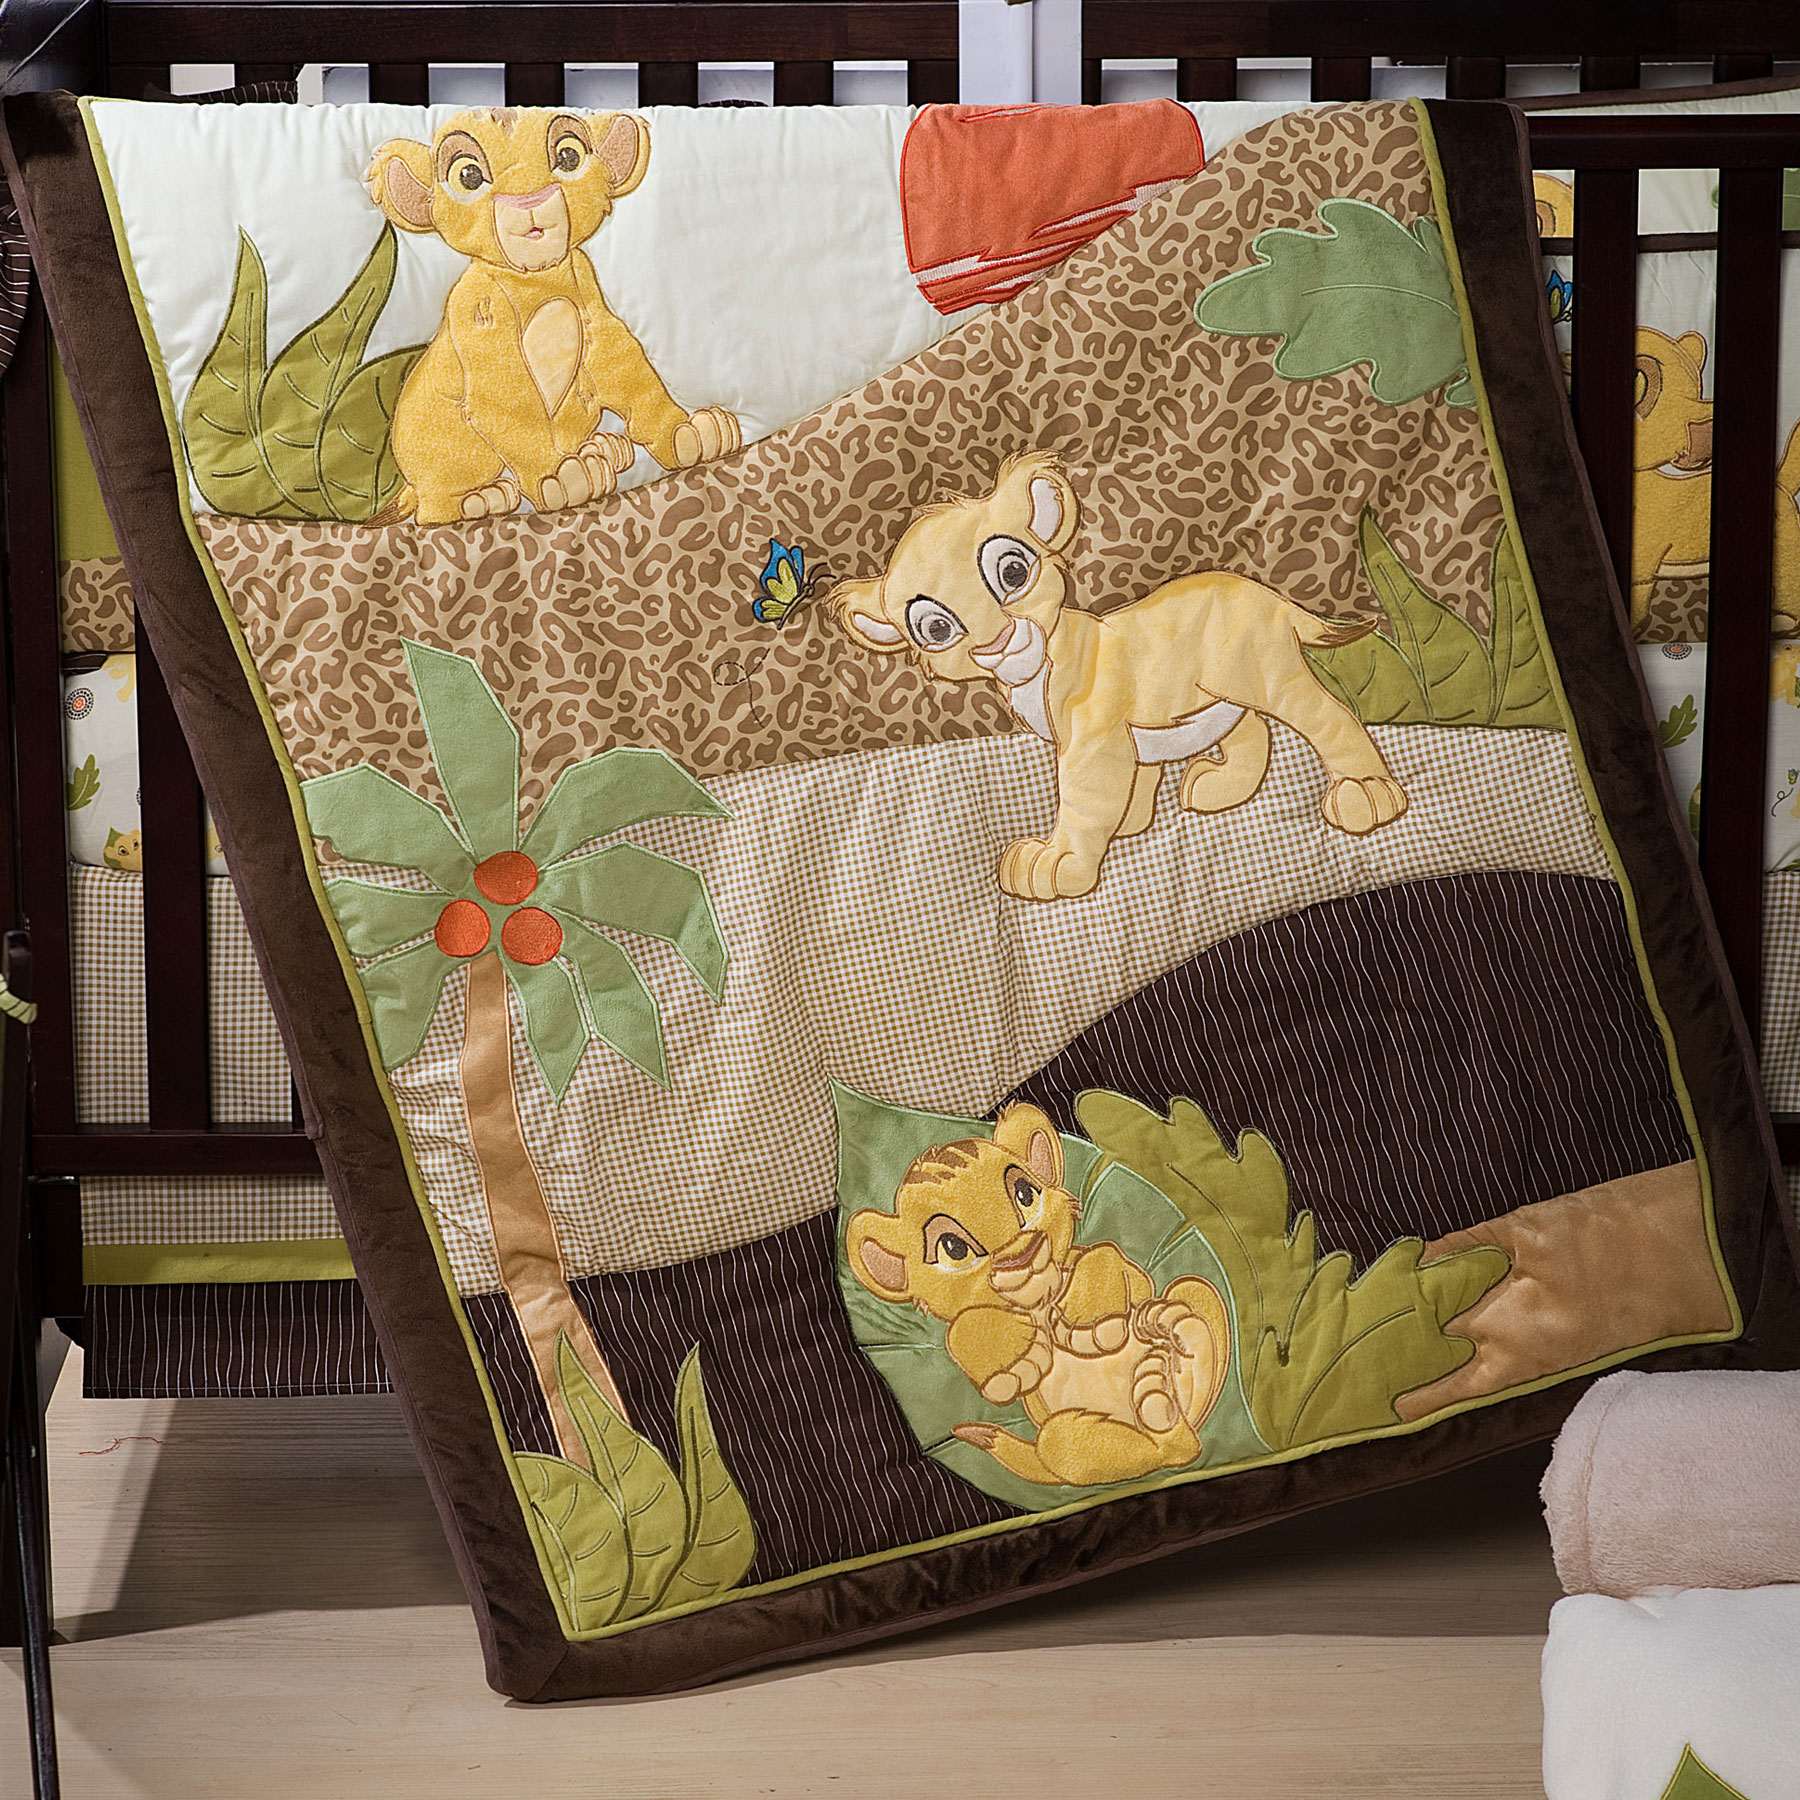 Sears Crib Bedding | Lion King Nursery Set | Batman Crib Set